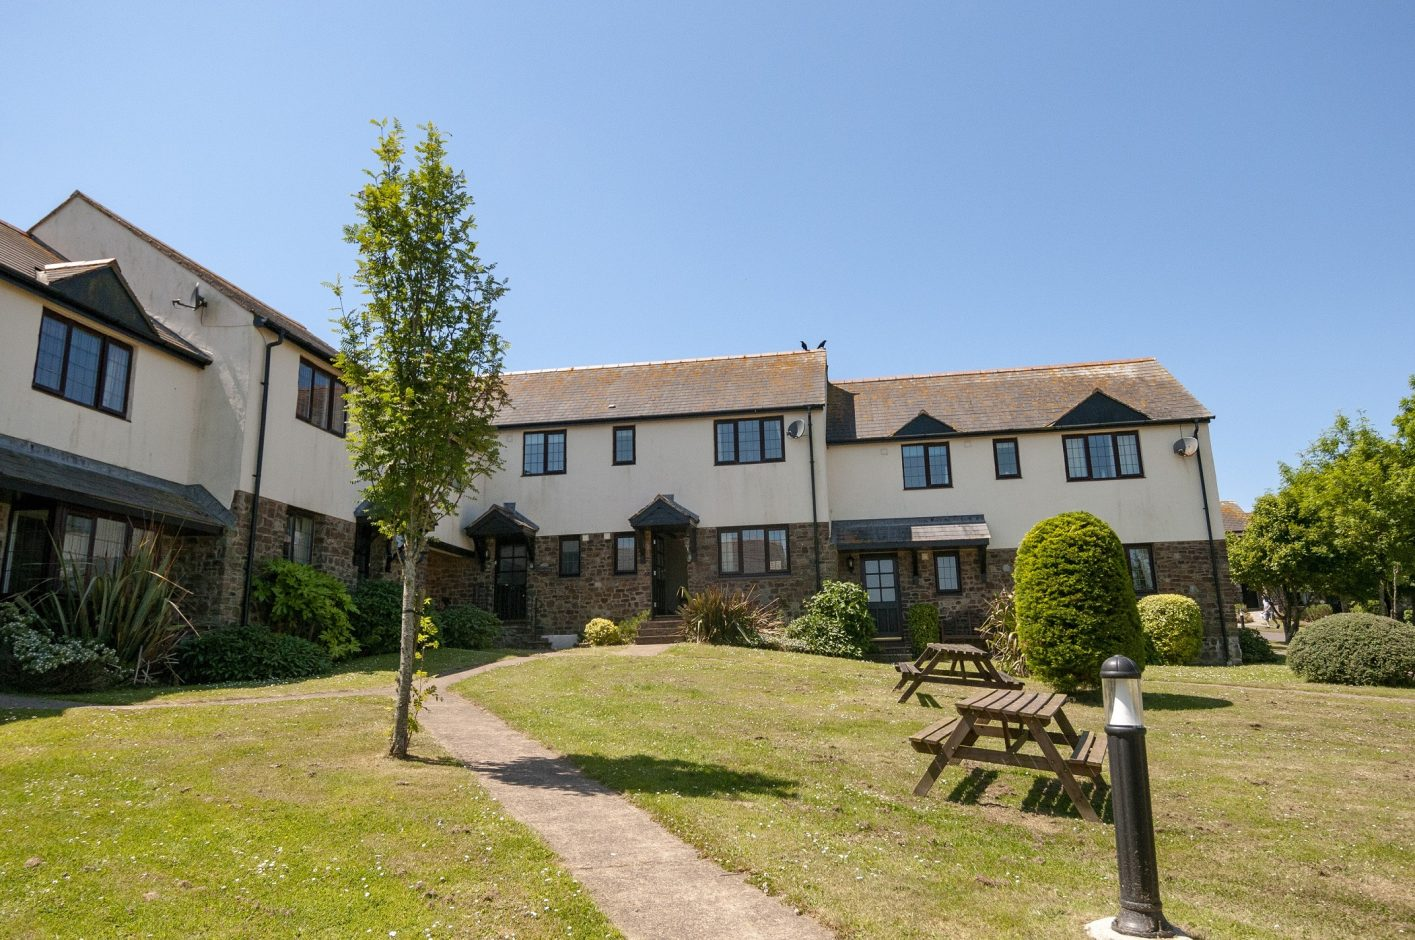 Willingcott valley holiday cottages